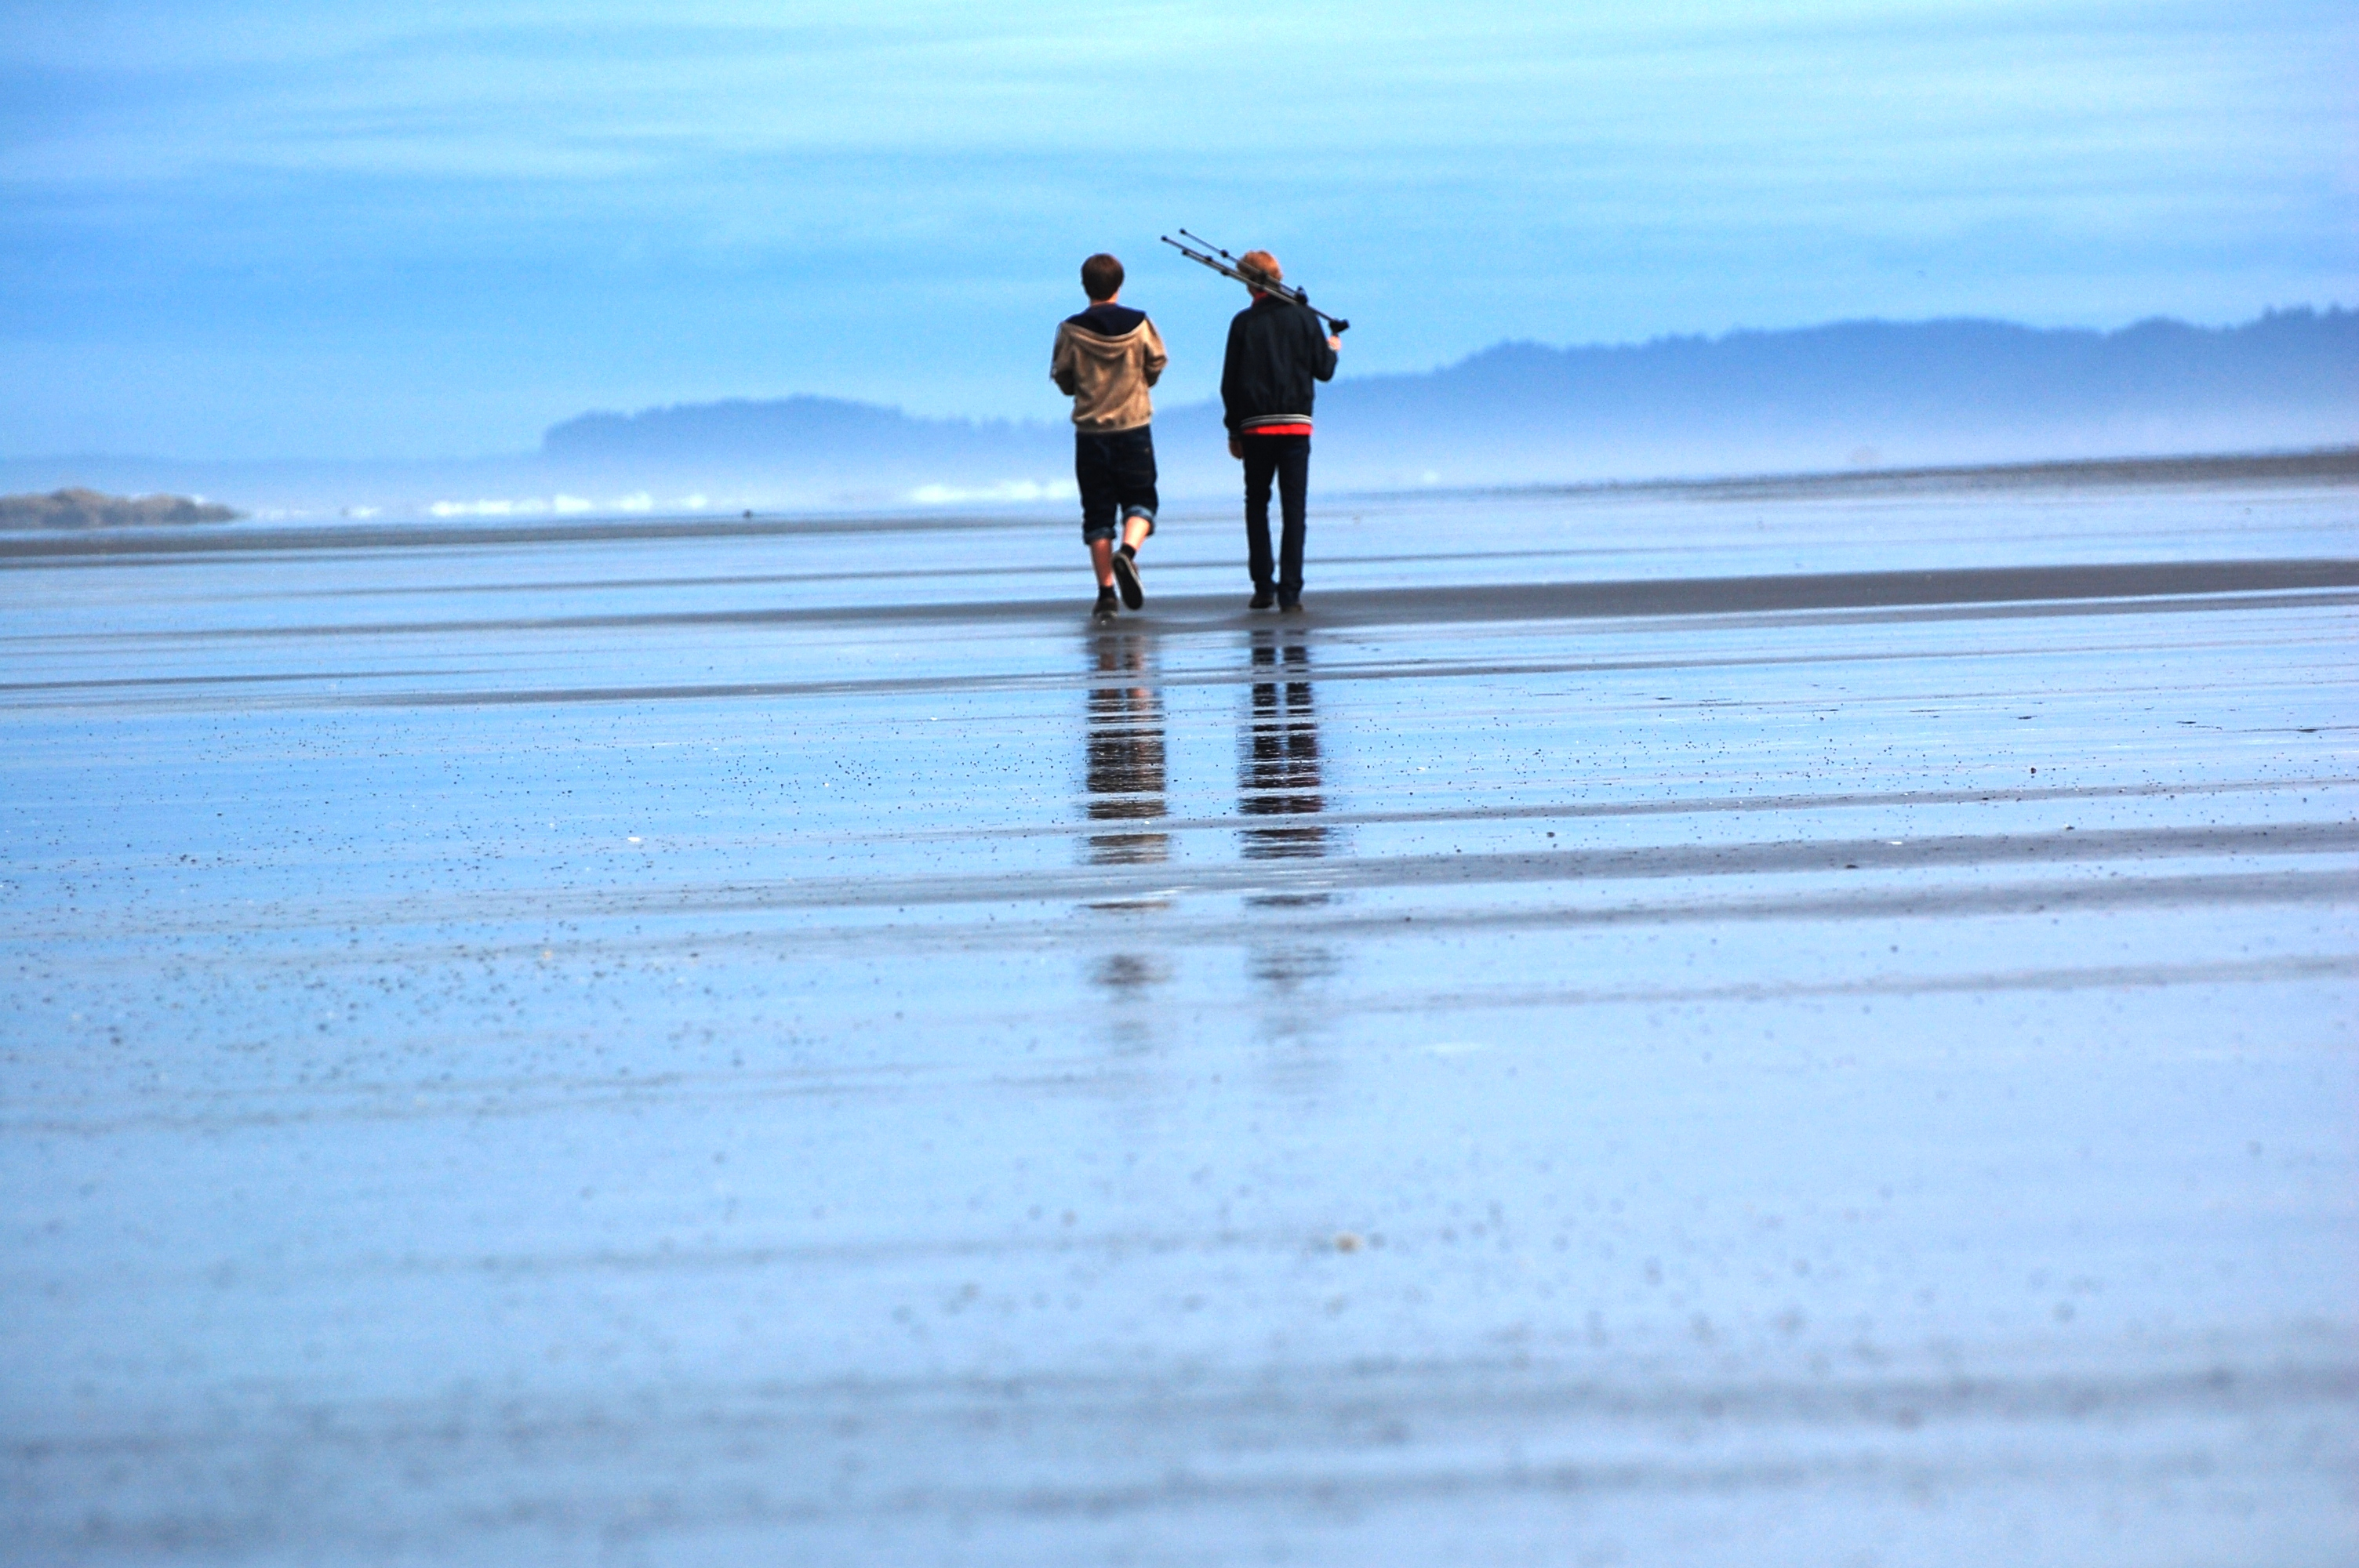 Two boys walking on a wet sand beach. Framed by the blue water and blue sky.